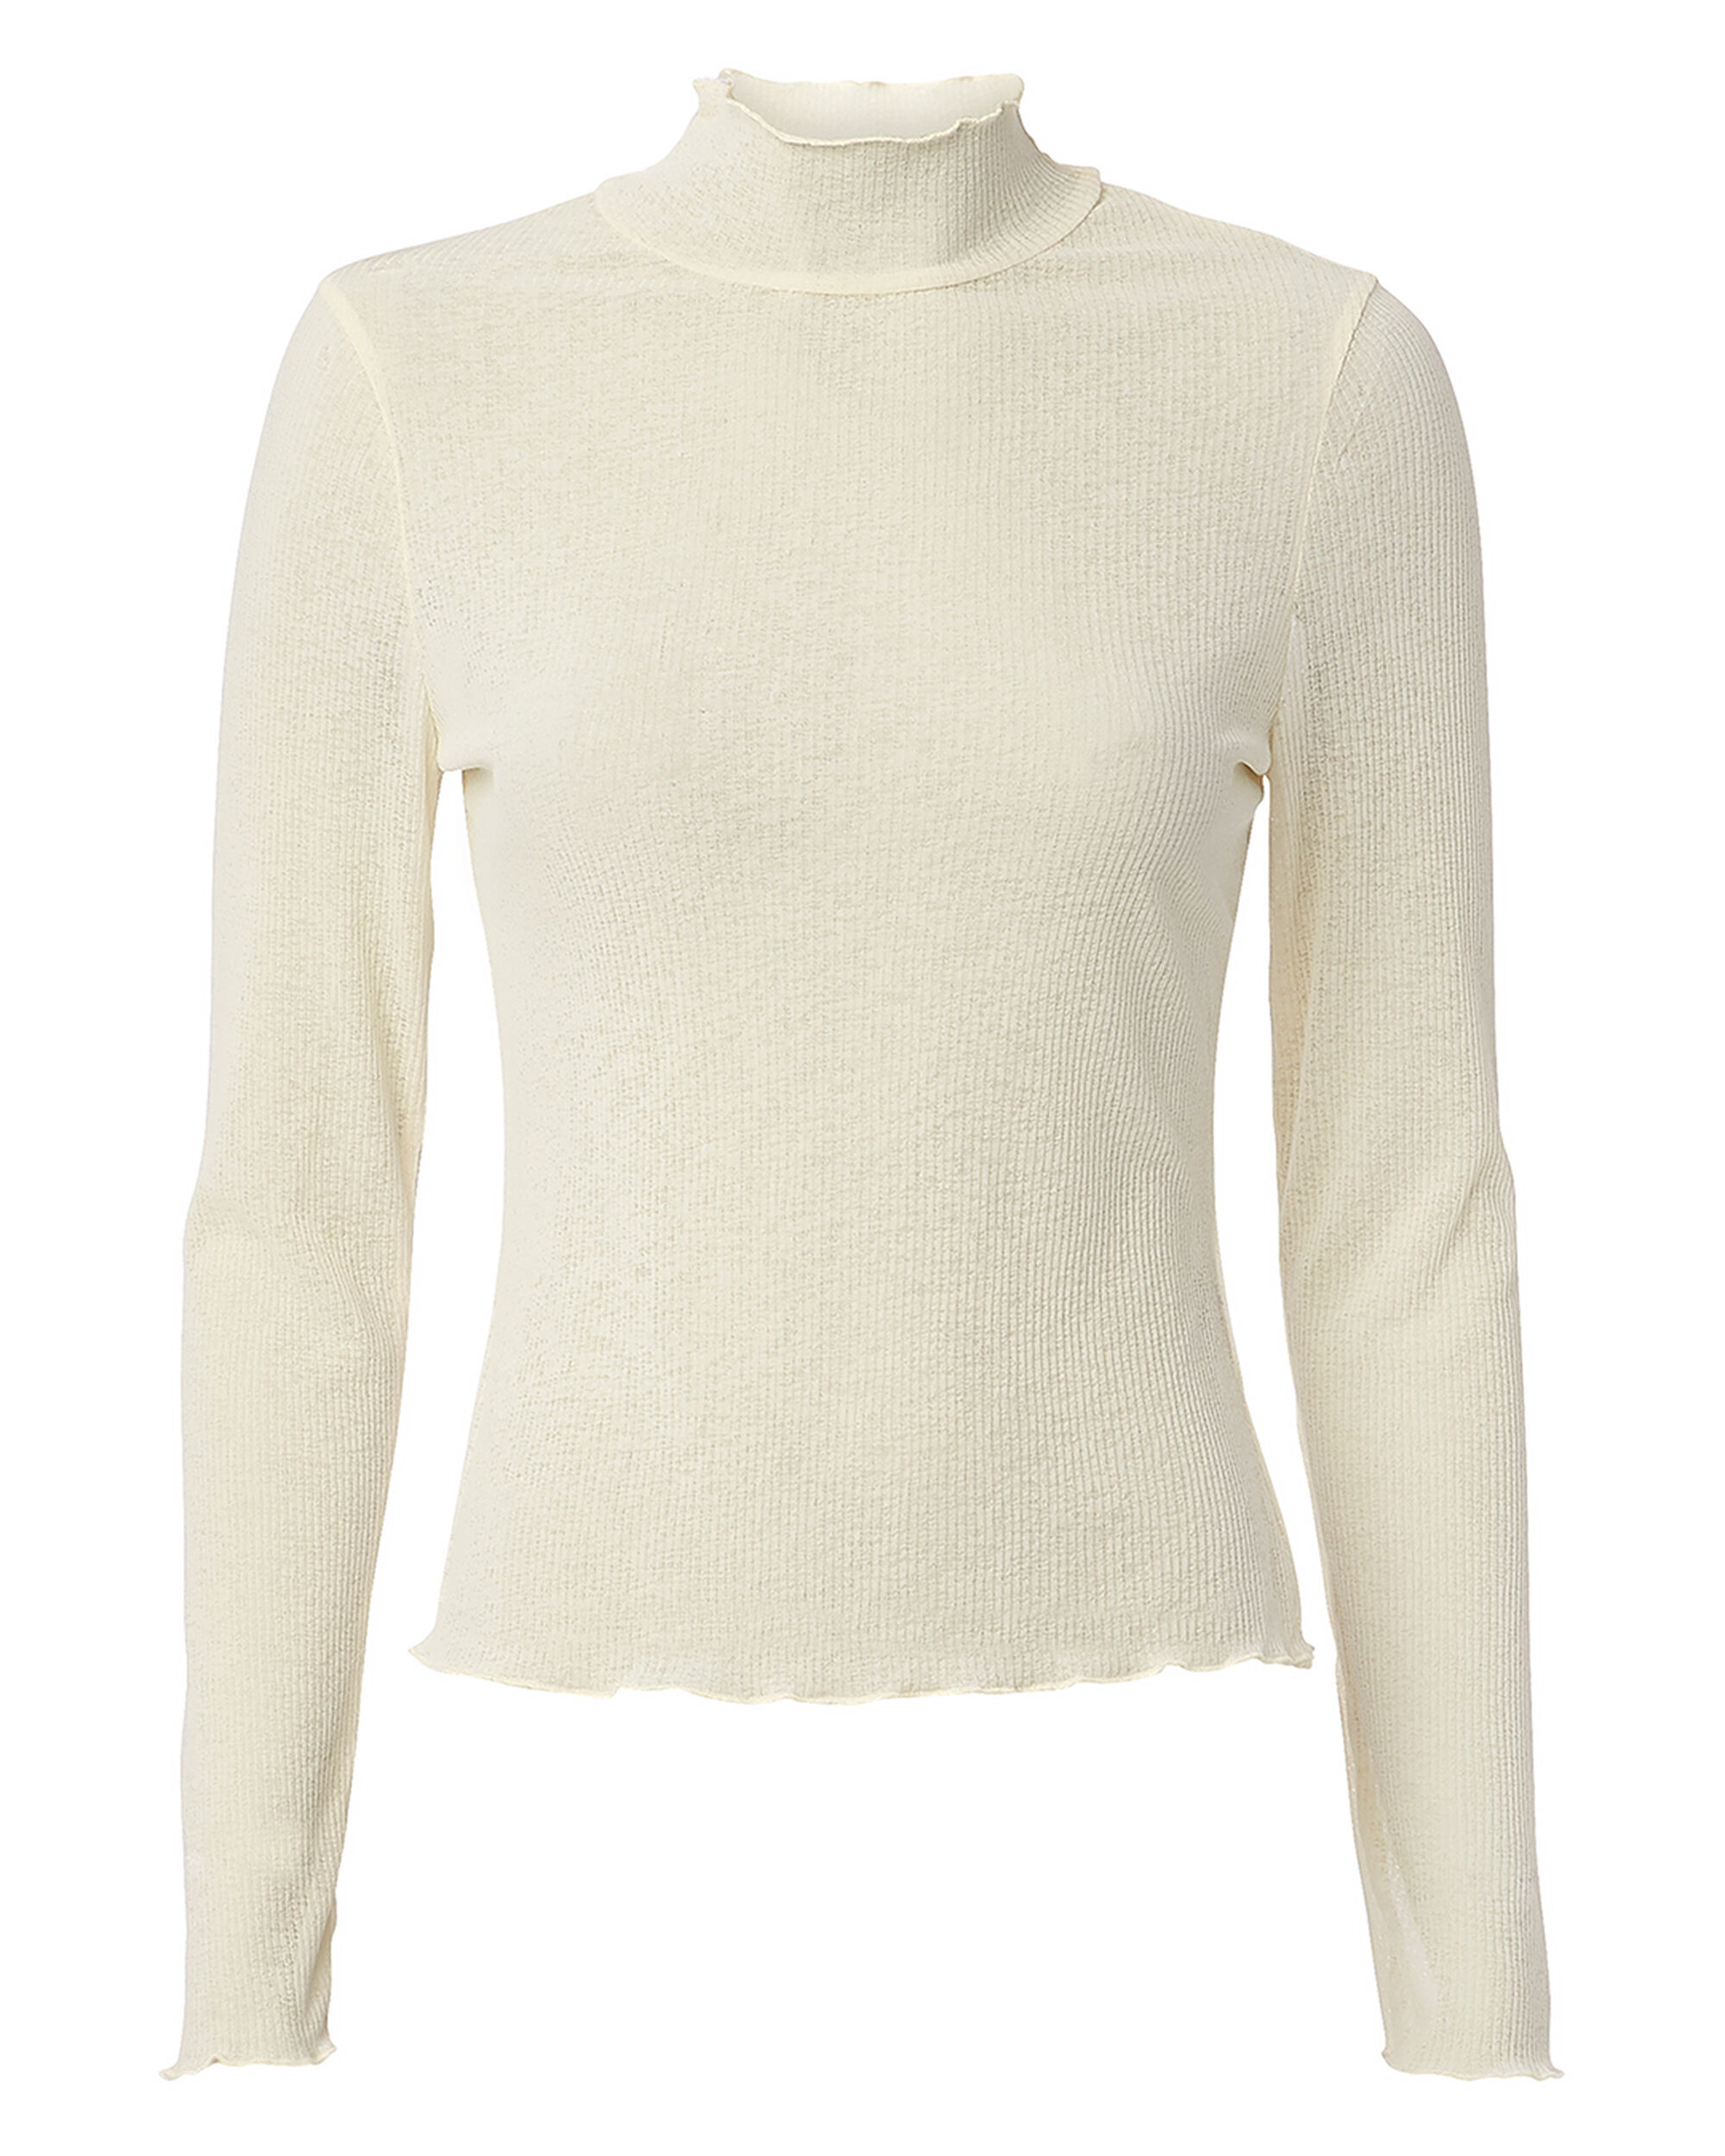 THE EAST ORDER THE EAT ORDER ELFIE KNIT TOP IVORY